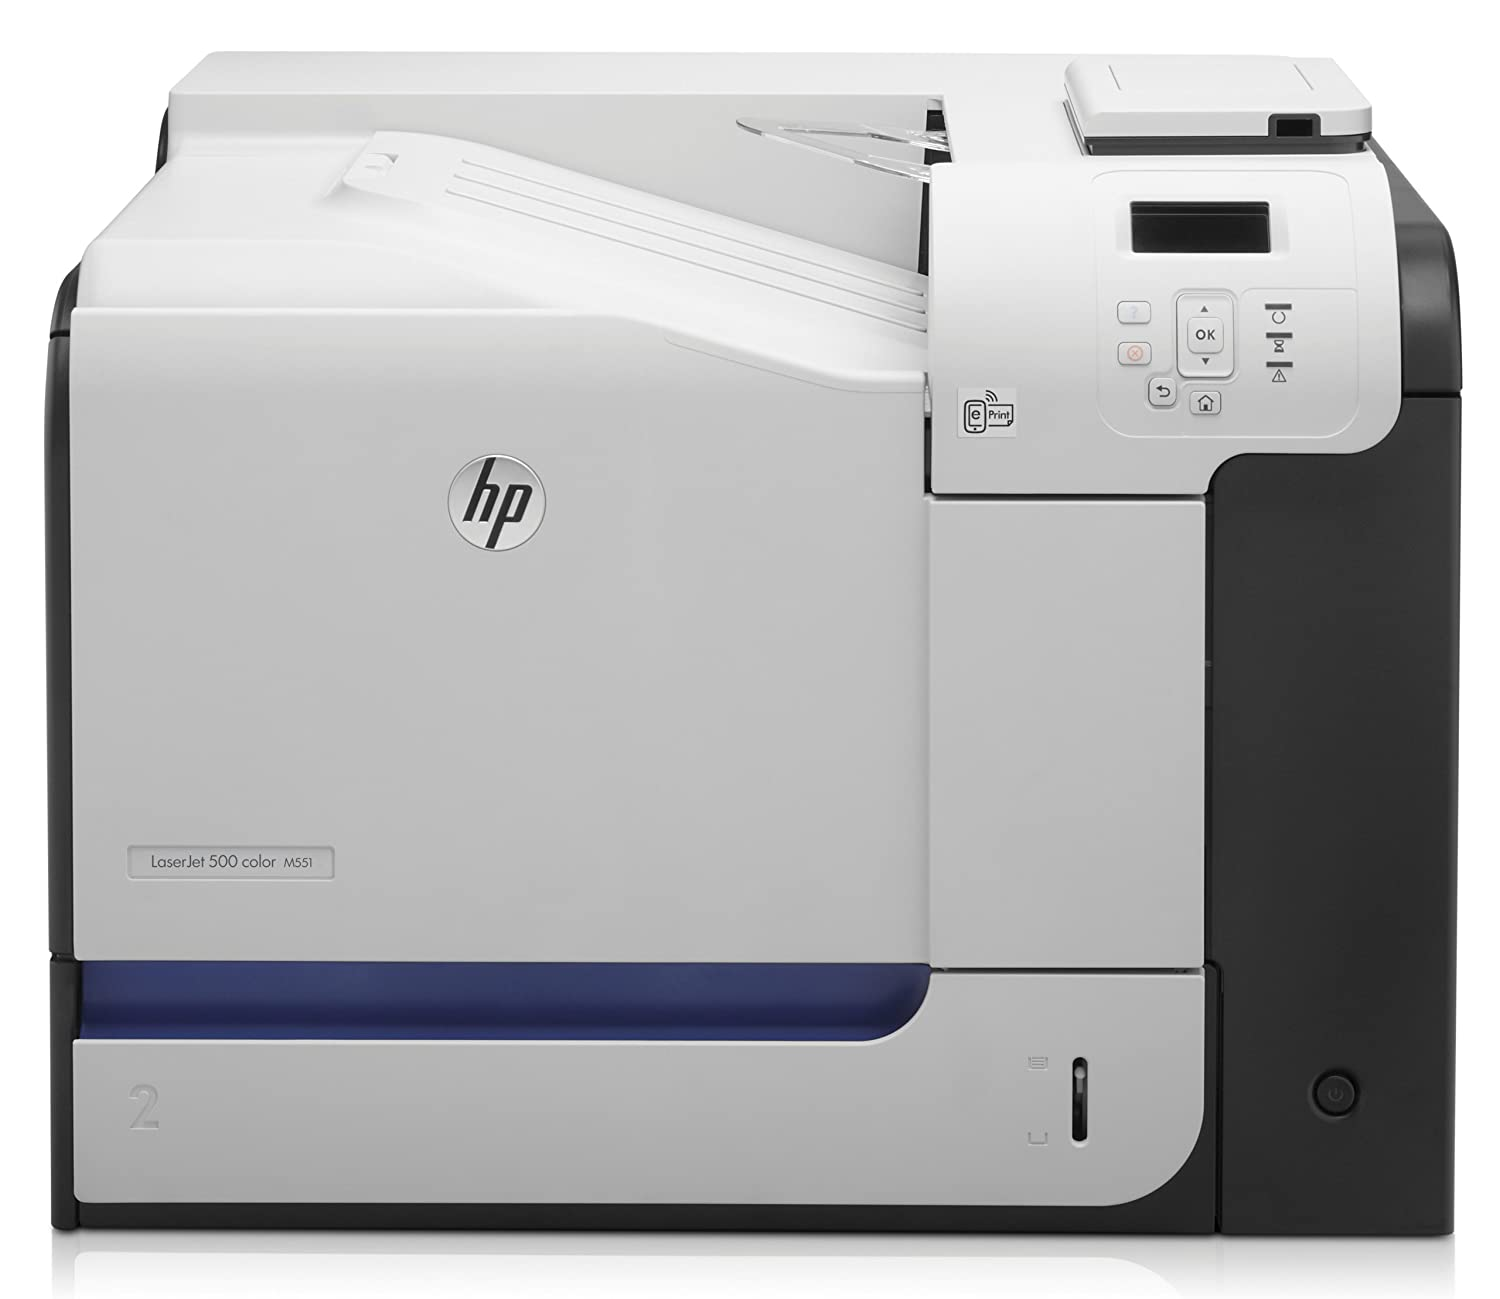 HP LaserJet Enterprise 500 color M551dn - Impresora láser ...